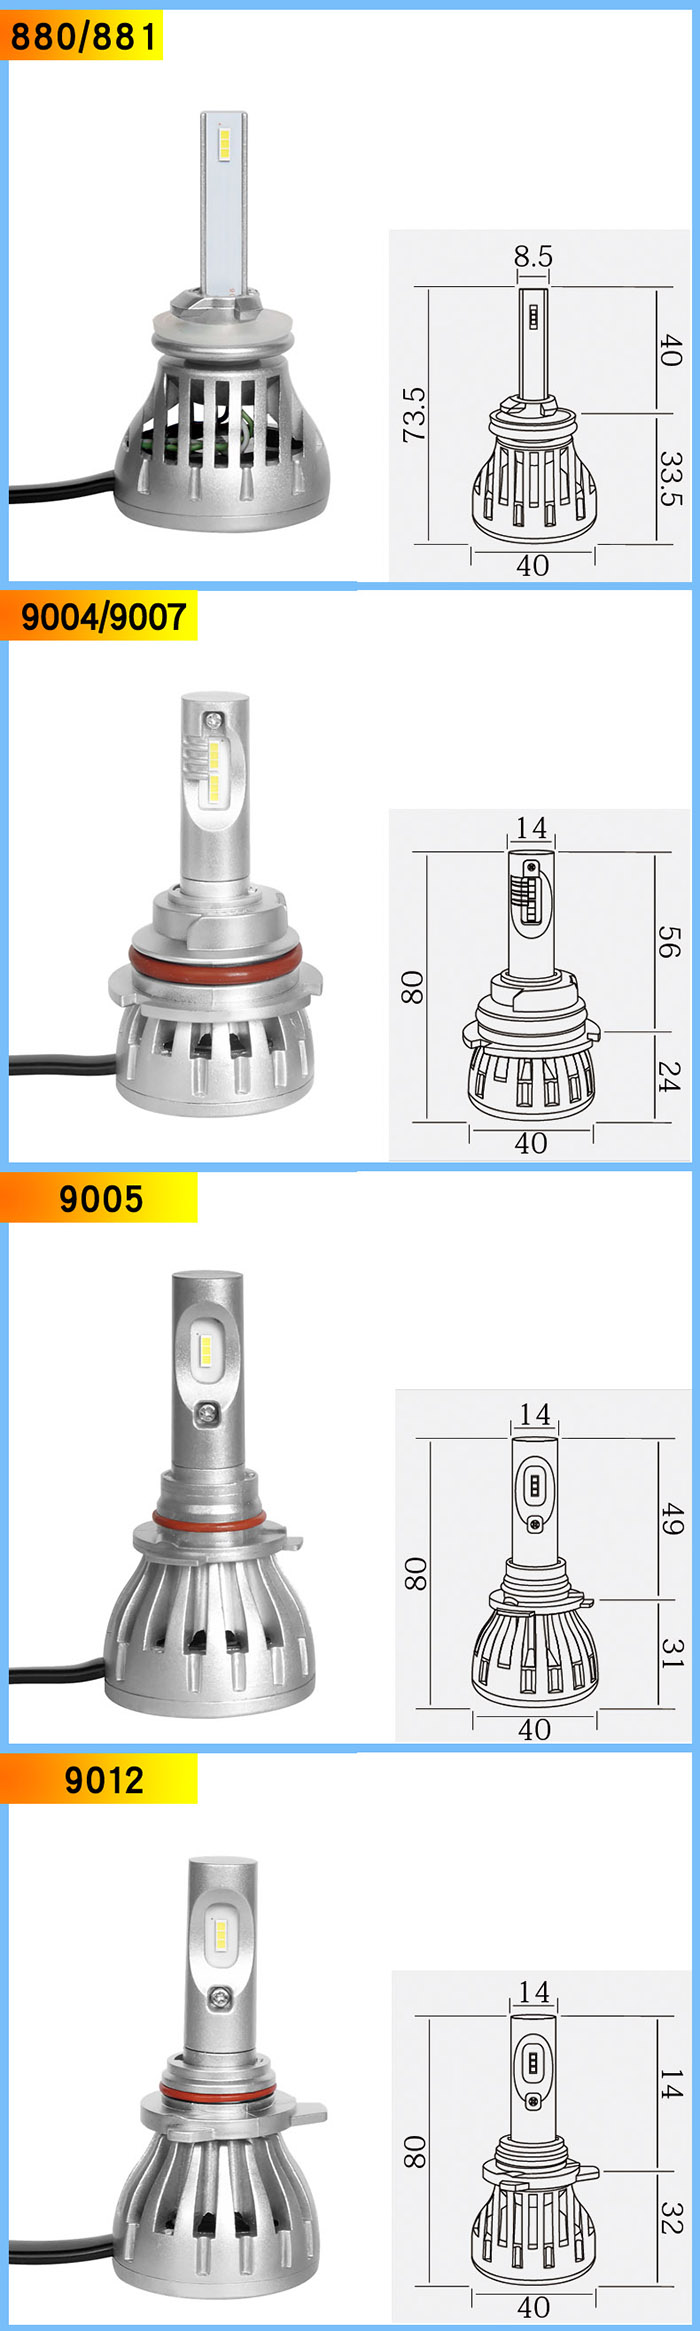 12v led headlight bulb-2.jpg